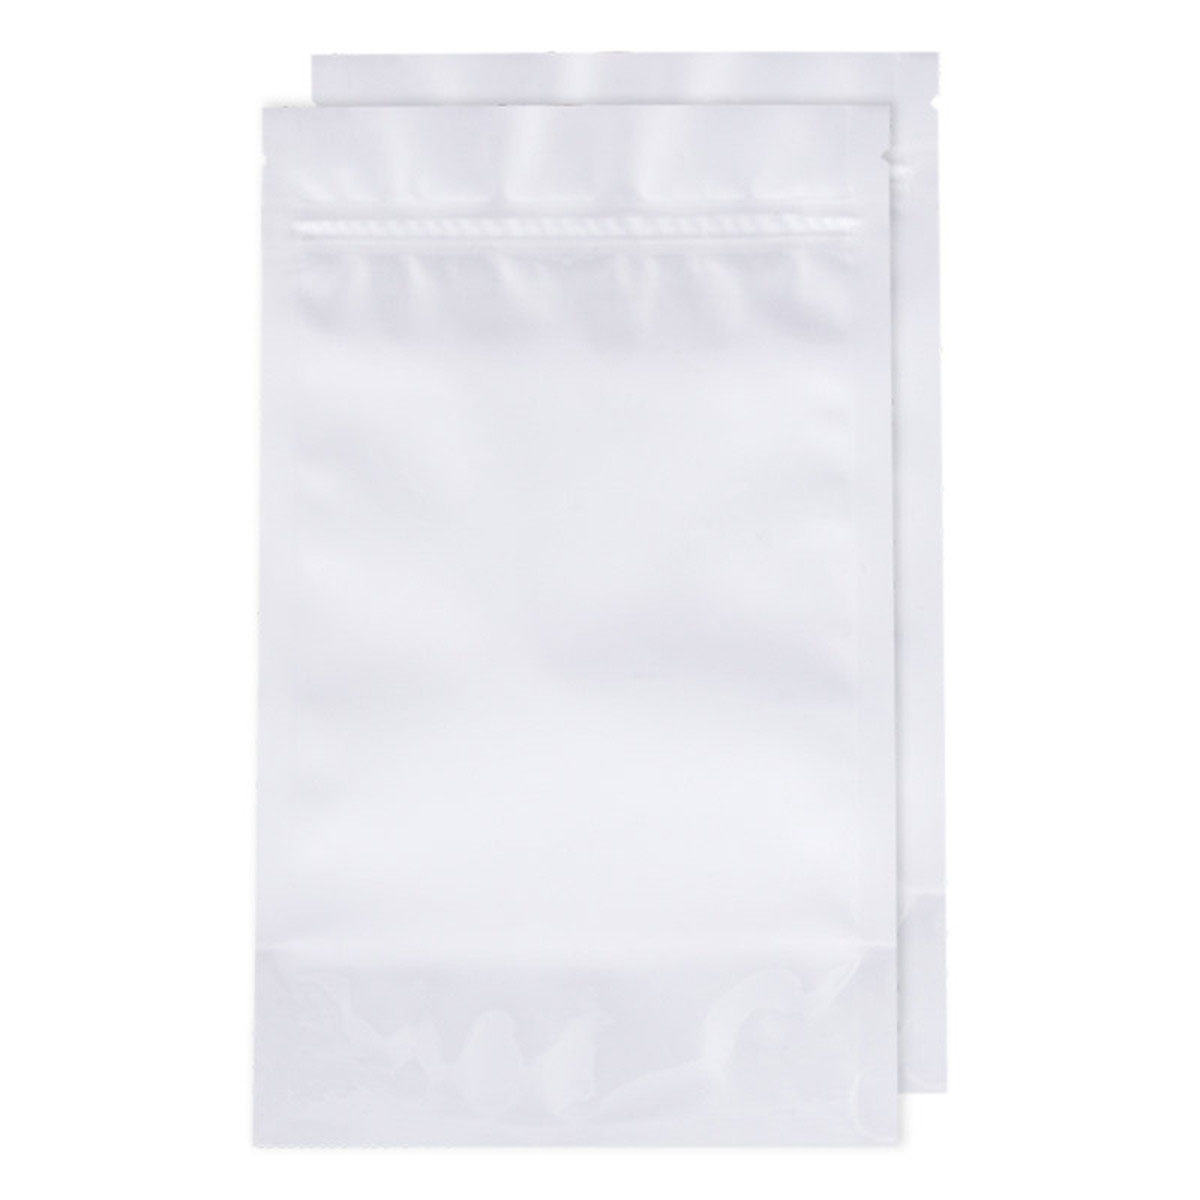 Half Ounce White Opaque Barrier Bags (100 Qty.)